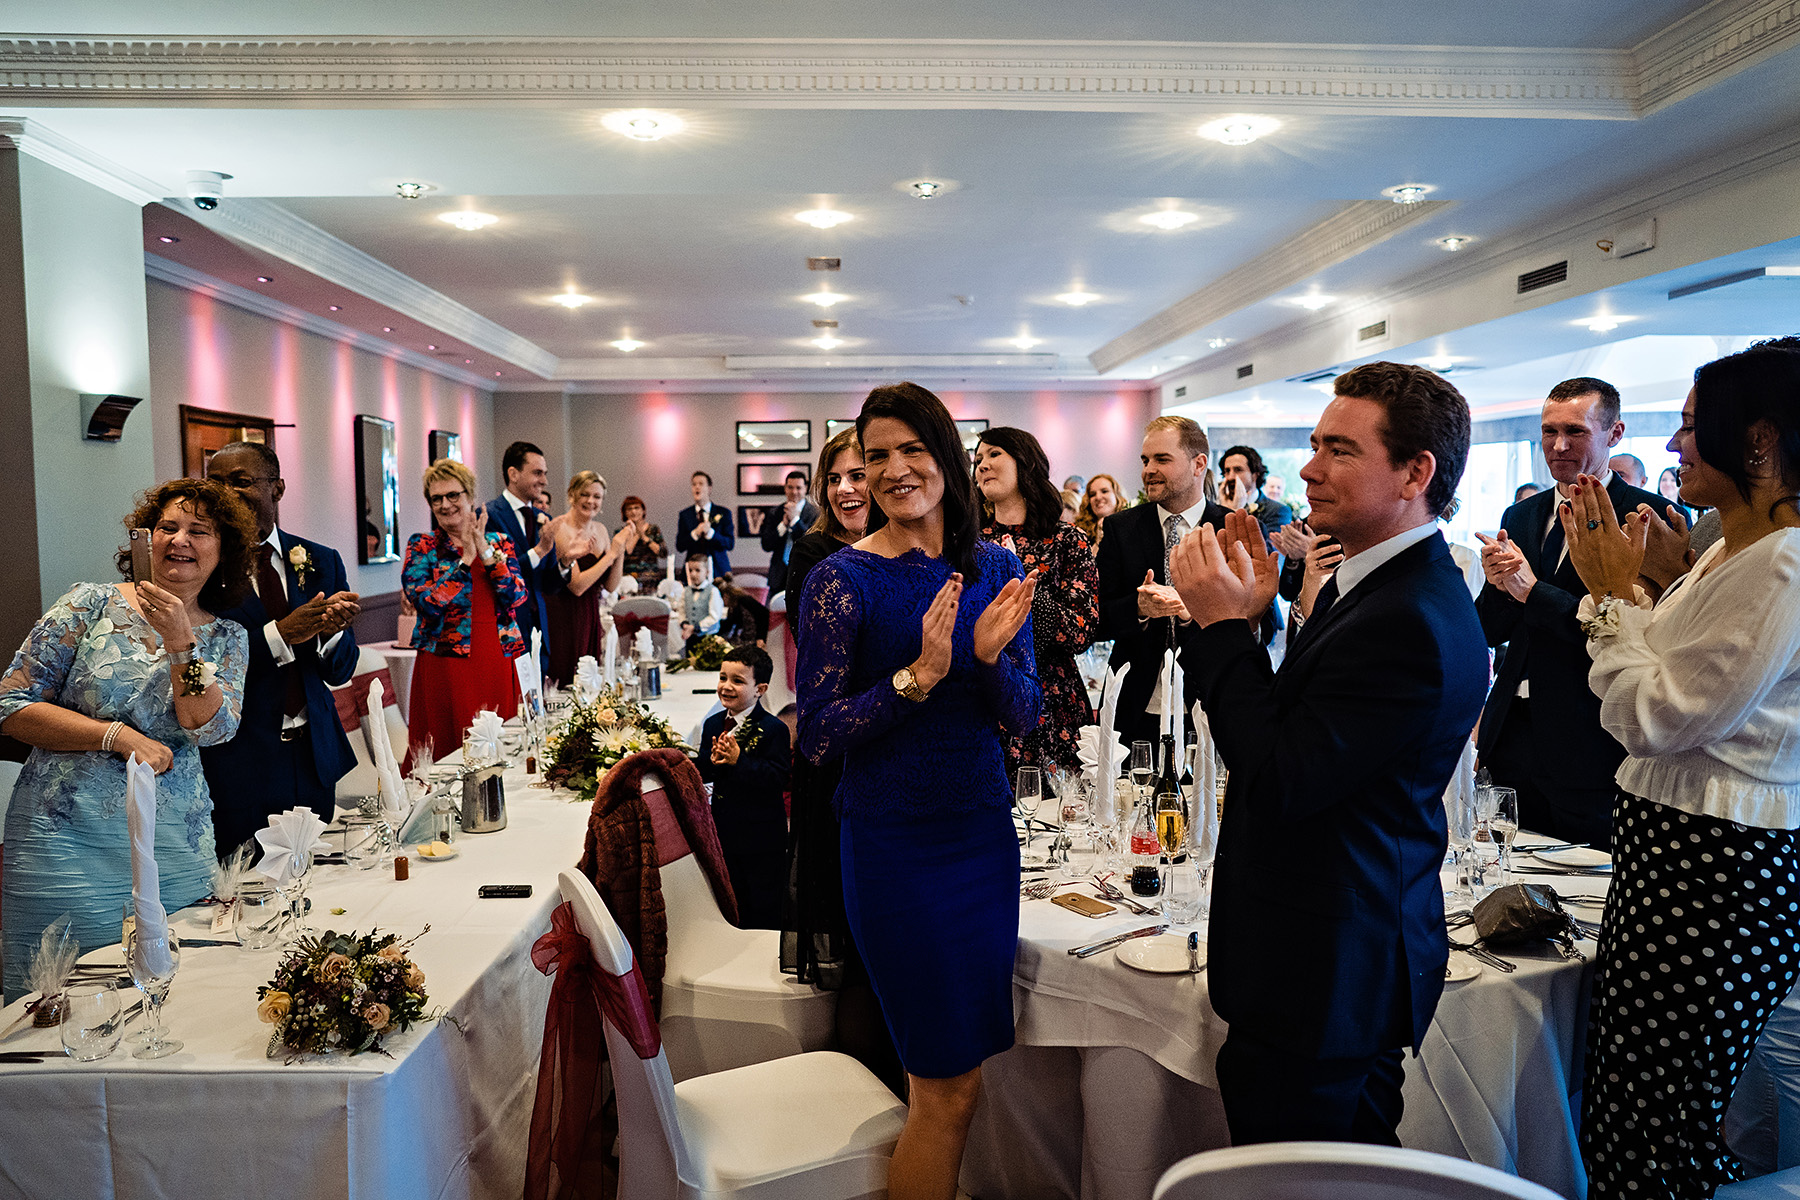 Guests clap as the couple walk into the Acton Suite